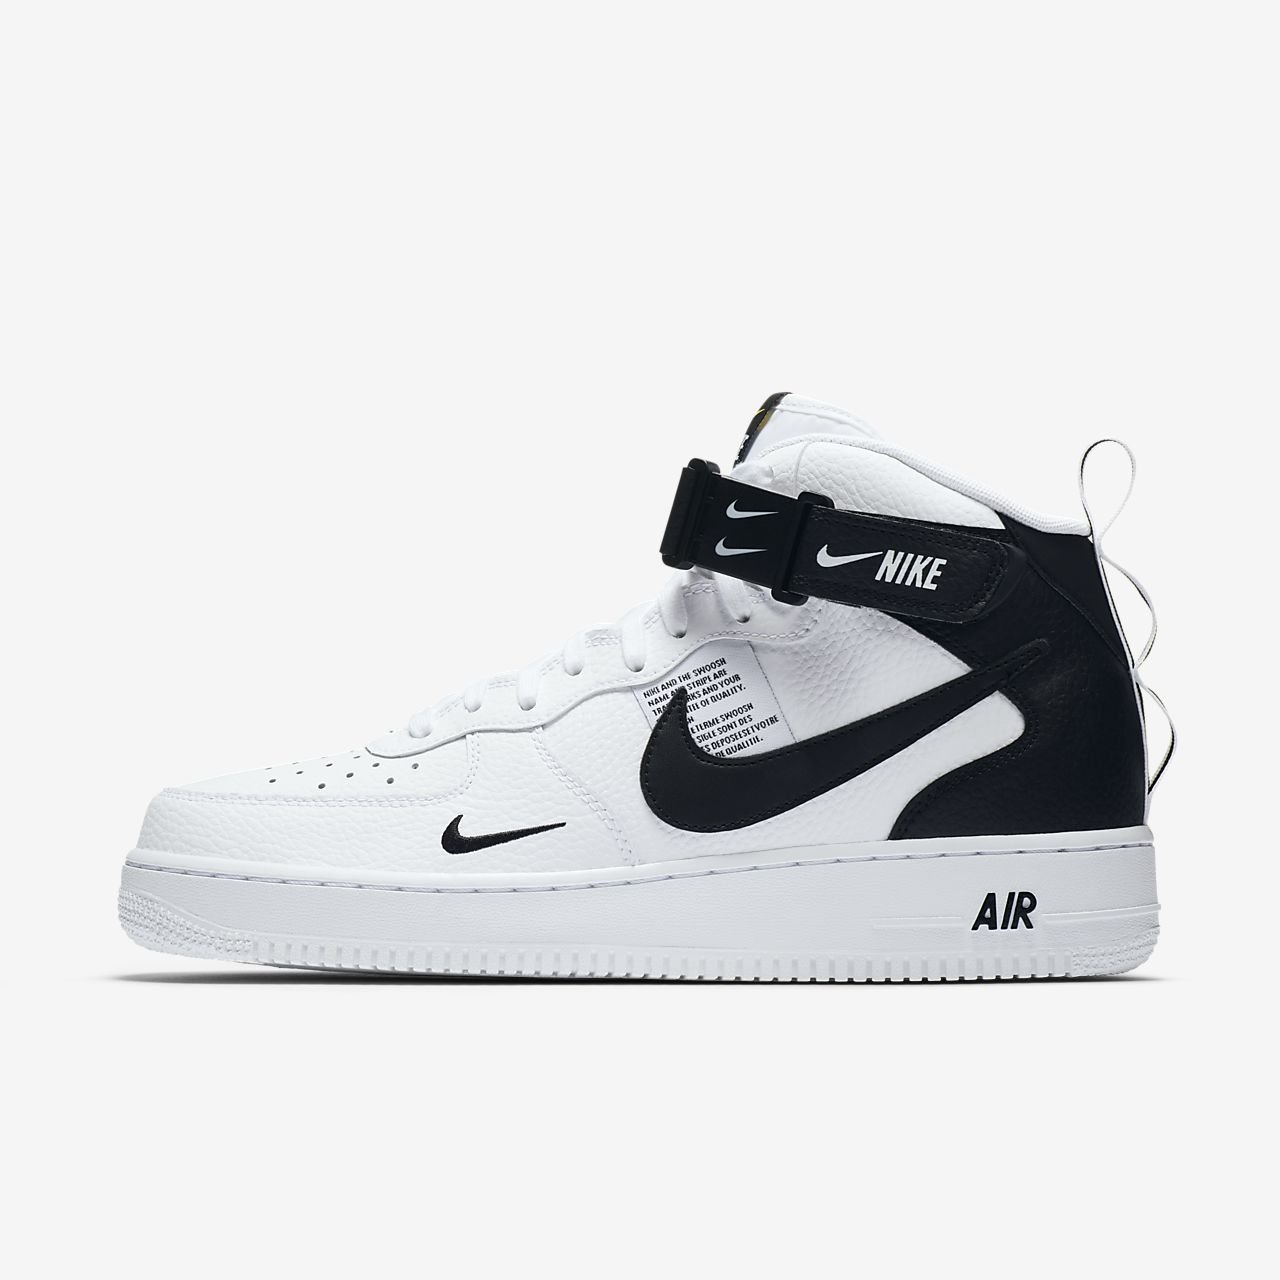 0871ae1e3992 Nike Air Force 1 07 Mid LV8 Men s Shoe. Nike.com ZA